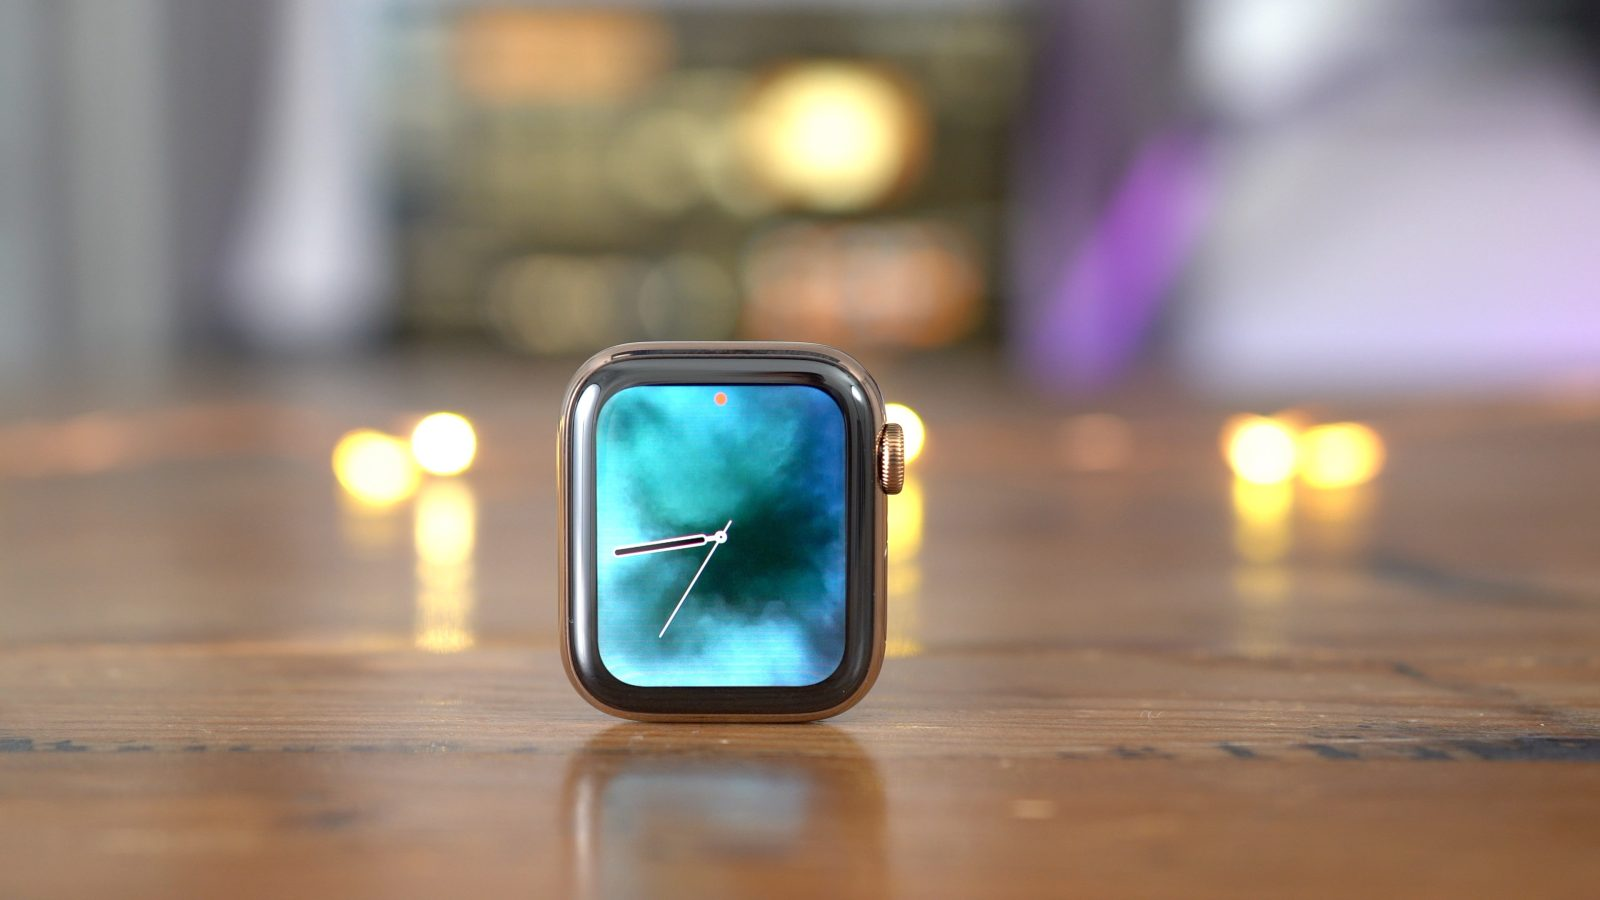 Top Apple Watch Series 4 features HD image